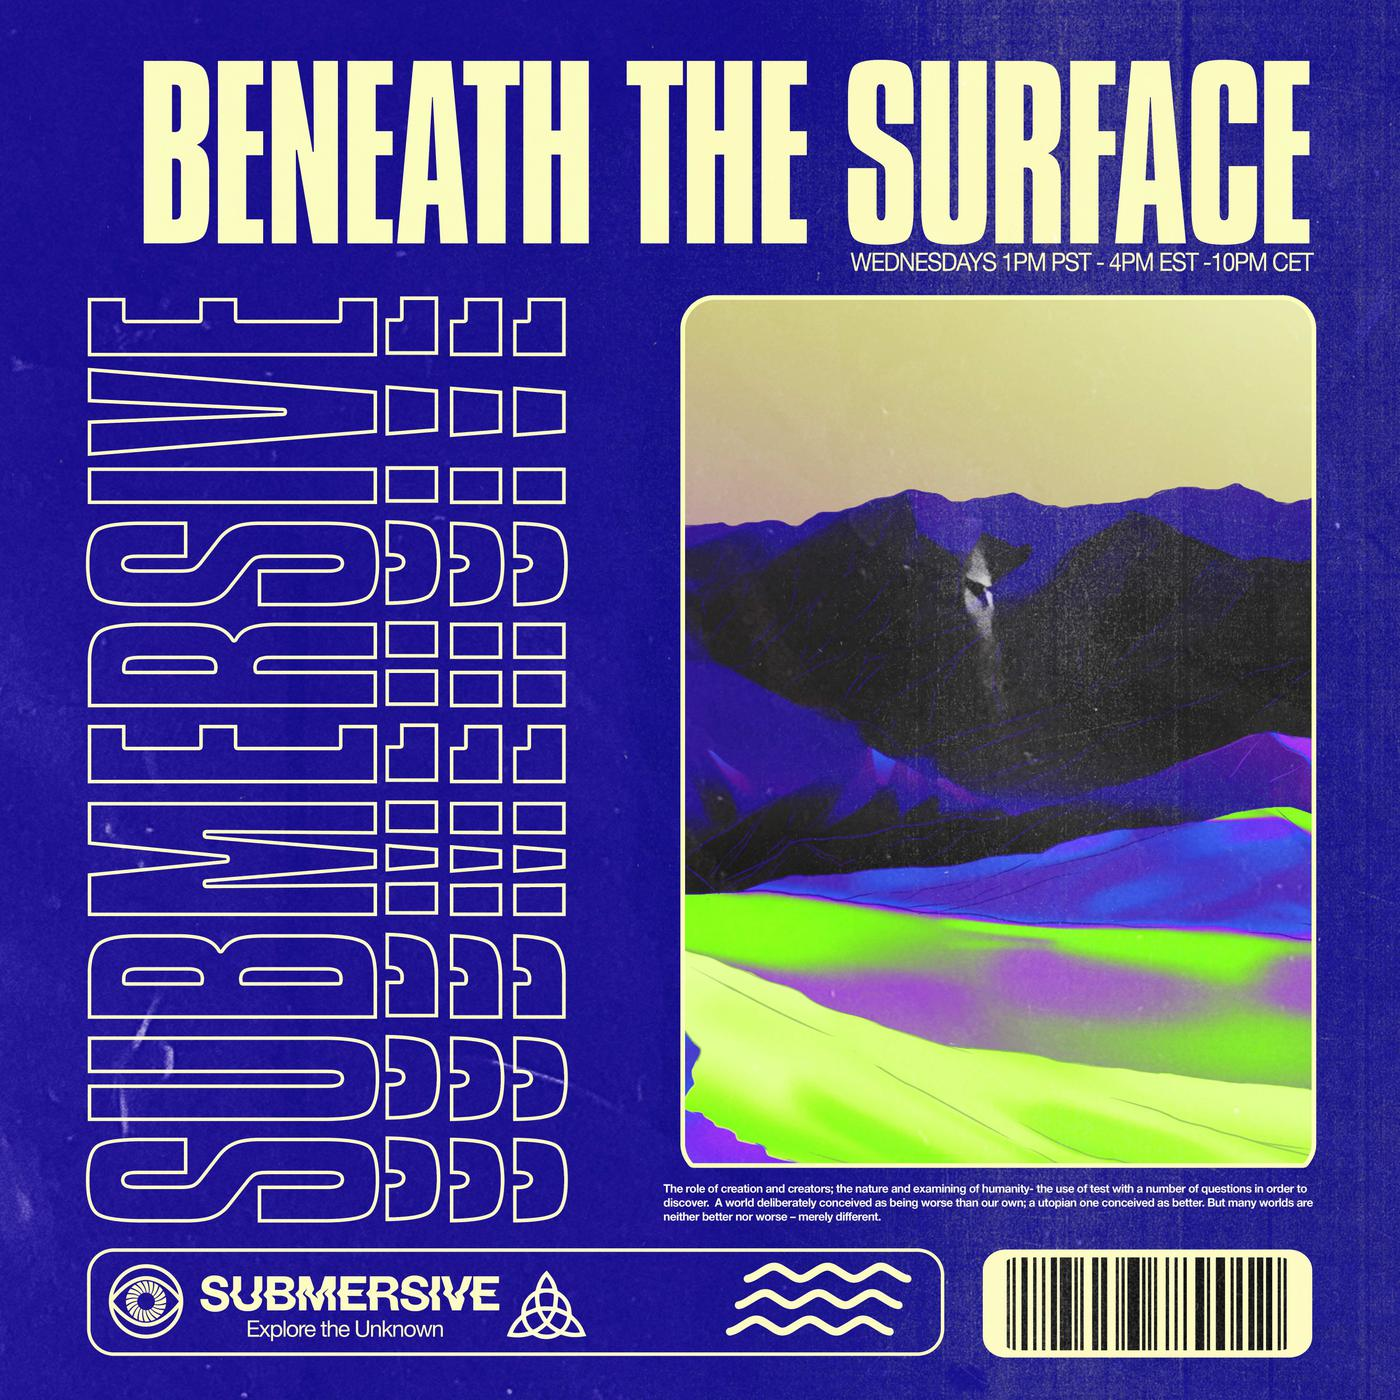 4Pm Cet To Pst beneath the surface radio (podcast) - submersive | listen notes